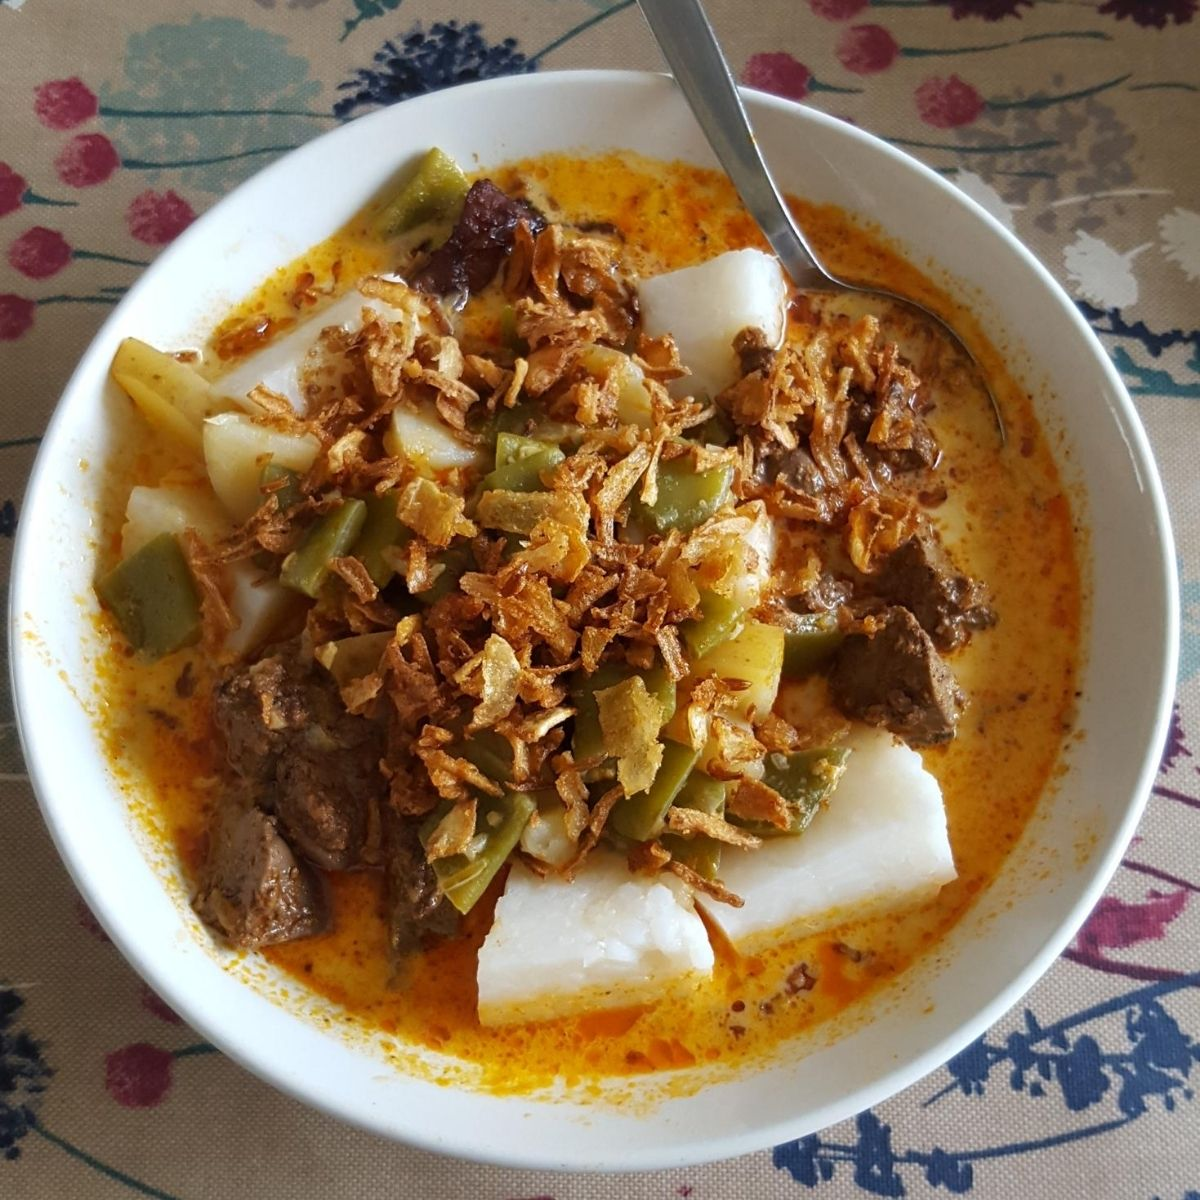 Lontong sayur - Indonesian vegetable curry with hard-boiled rice cake called lontong